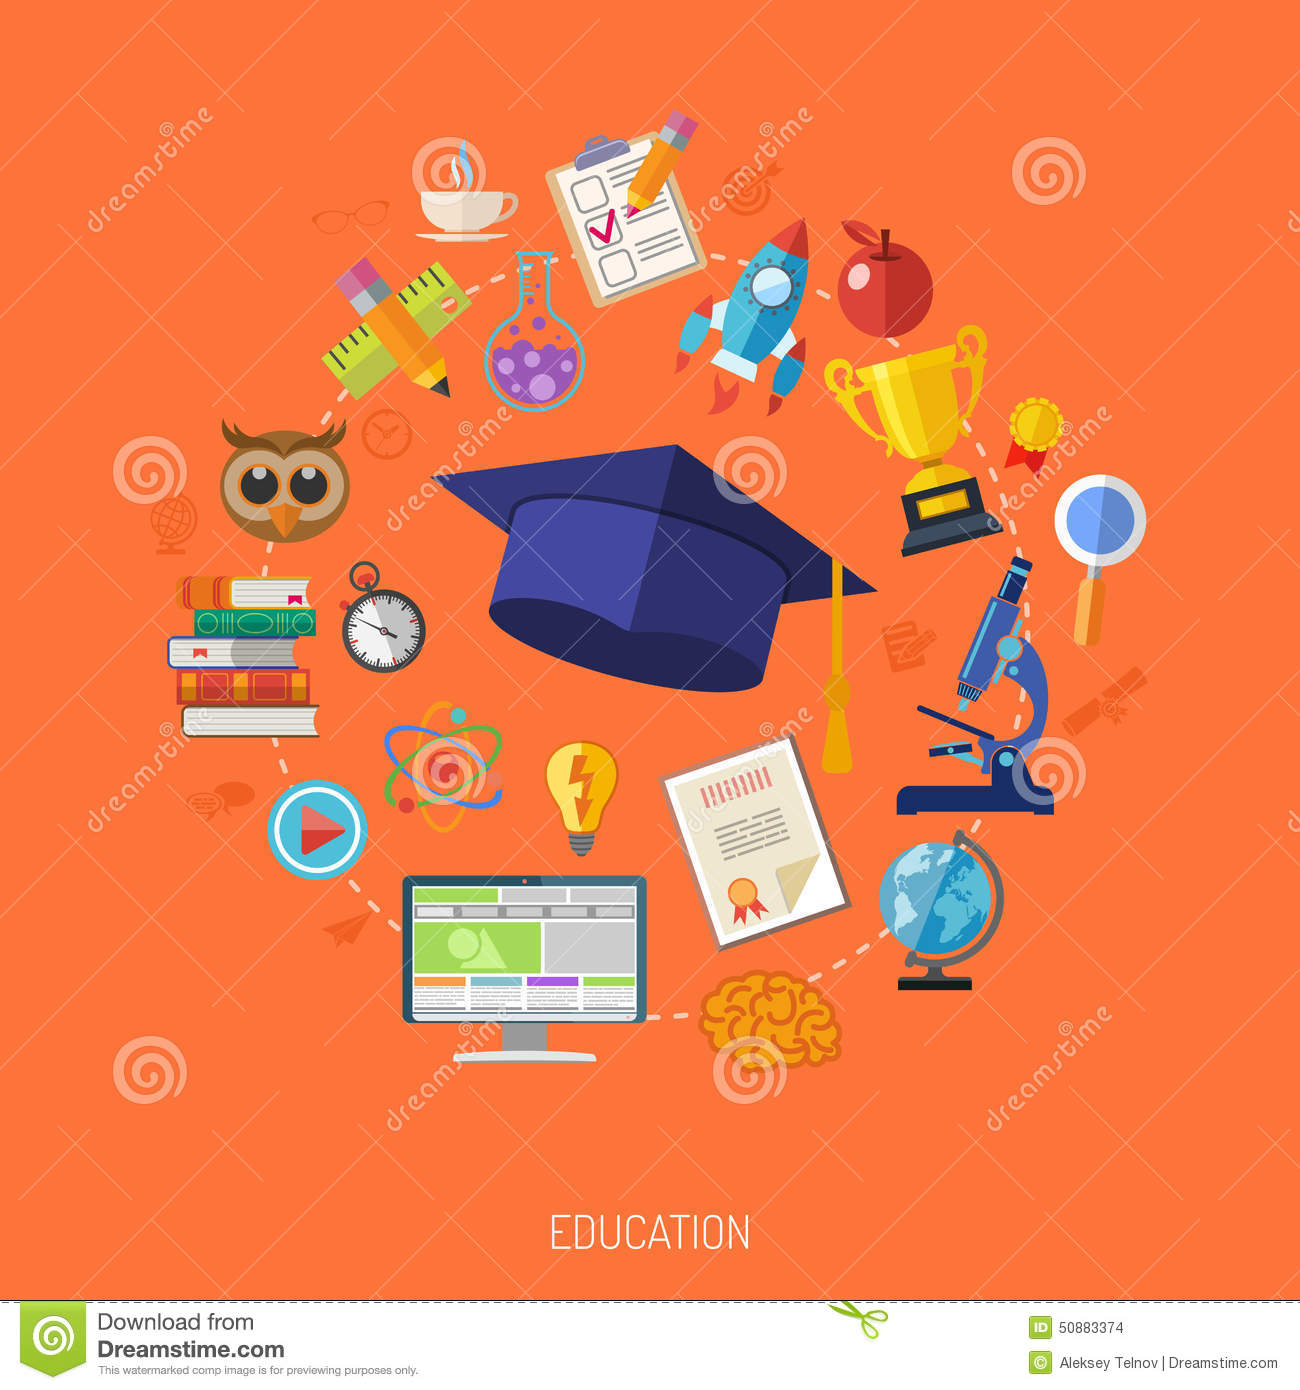 E learning poster designs - Online Education Concept